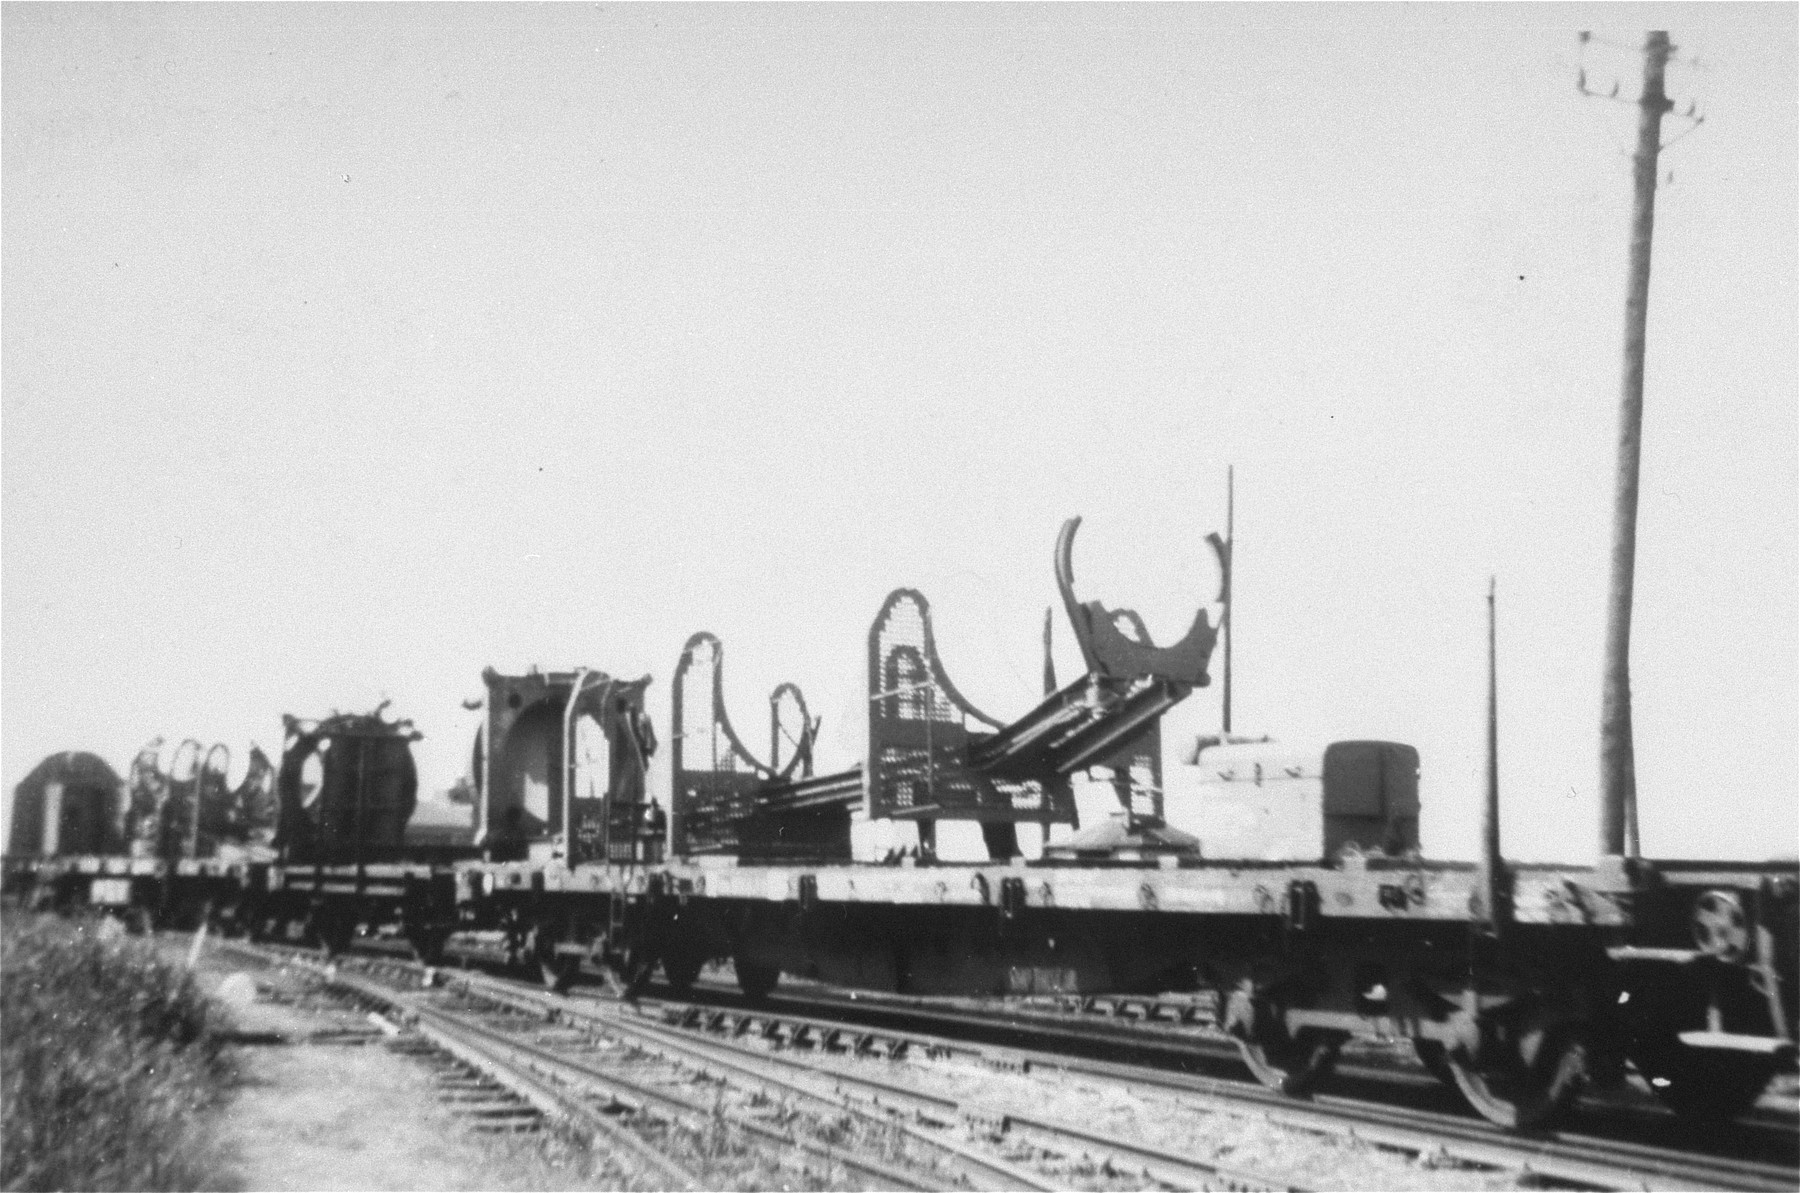 V-2 rocket launchers that were removed from Dora-Mittlebau, on route to Antwerp where they will be trans-shipped to the United States.